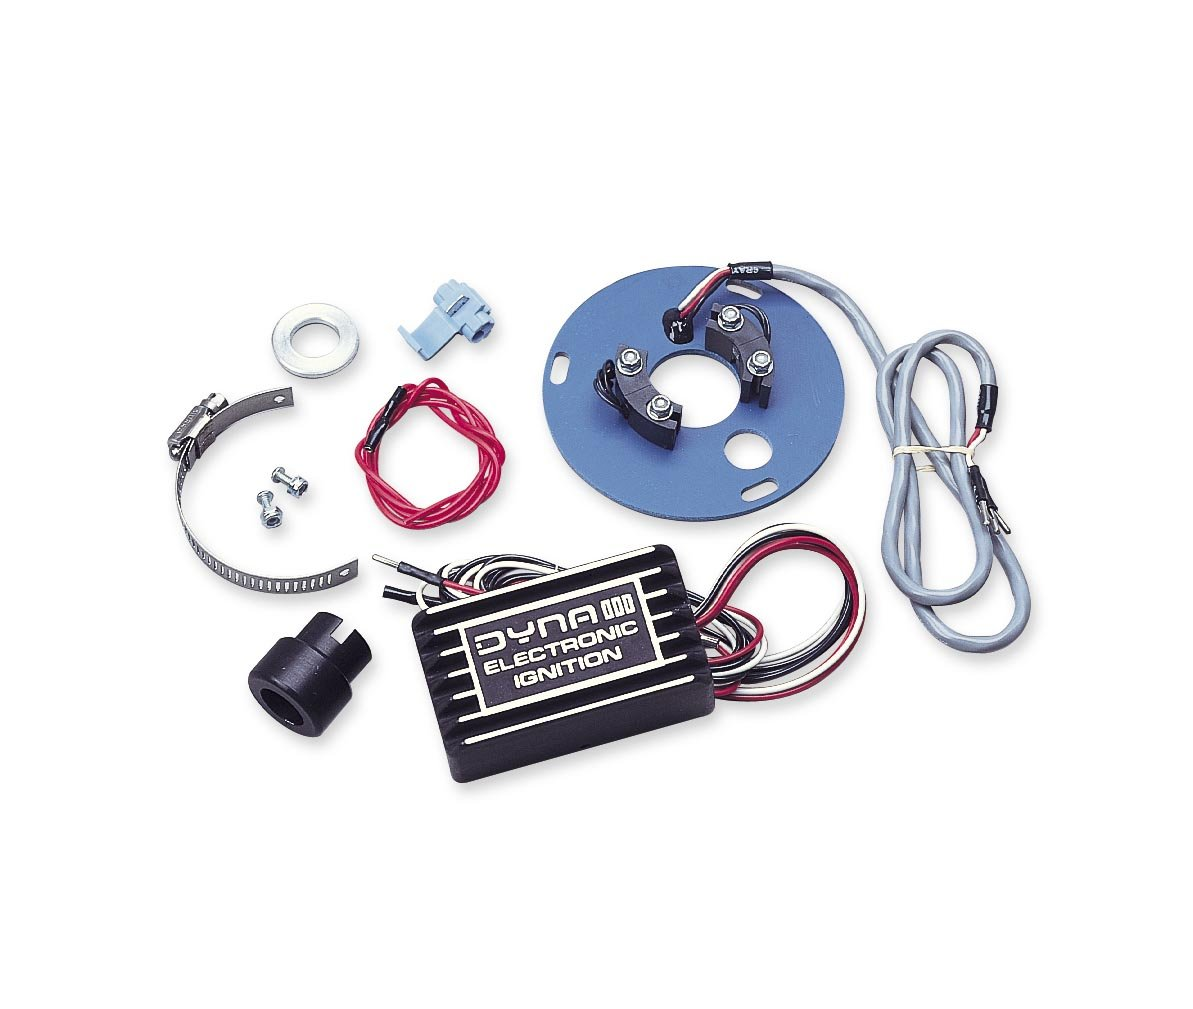 Dynatek Dyna Iii Electronic Ignition Systems D35 1 Coils Wiring Diagram For Kz1000 Mk2 1980 Automotive